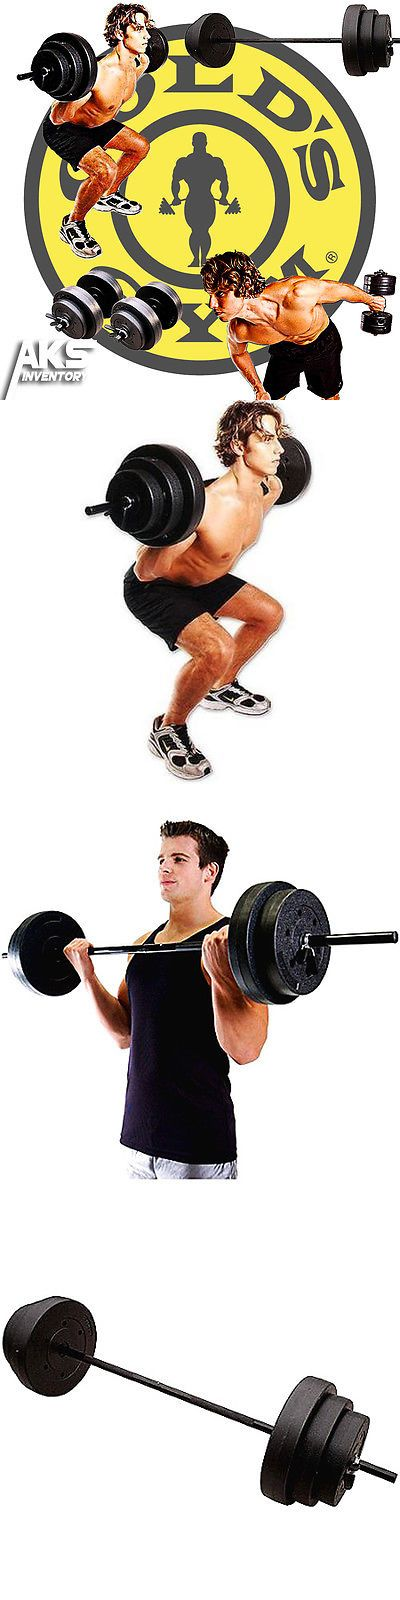 Weight Sets 179818: Barbell 100Lb And Dumbells 40Lb Weight Lifting Sets Strength Train Workout Fitness -> BUY IT NOW ONLY: $79.75 on eBay!